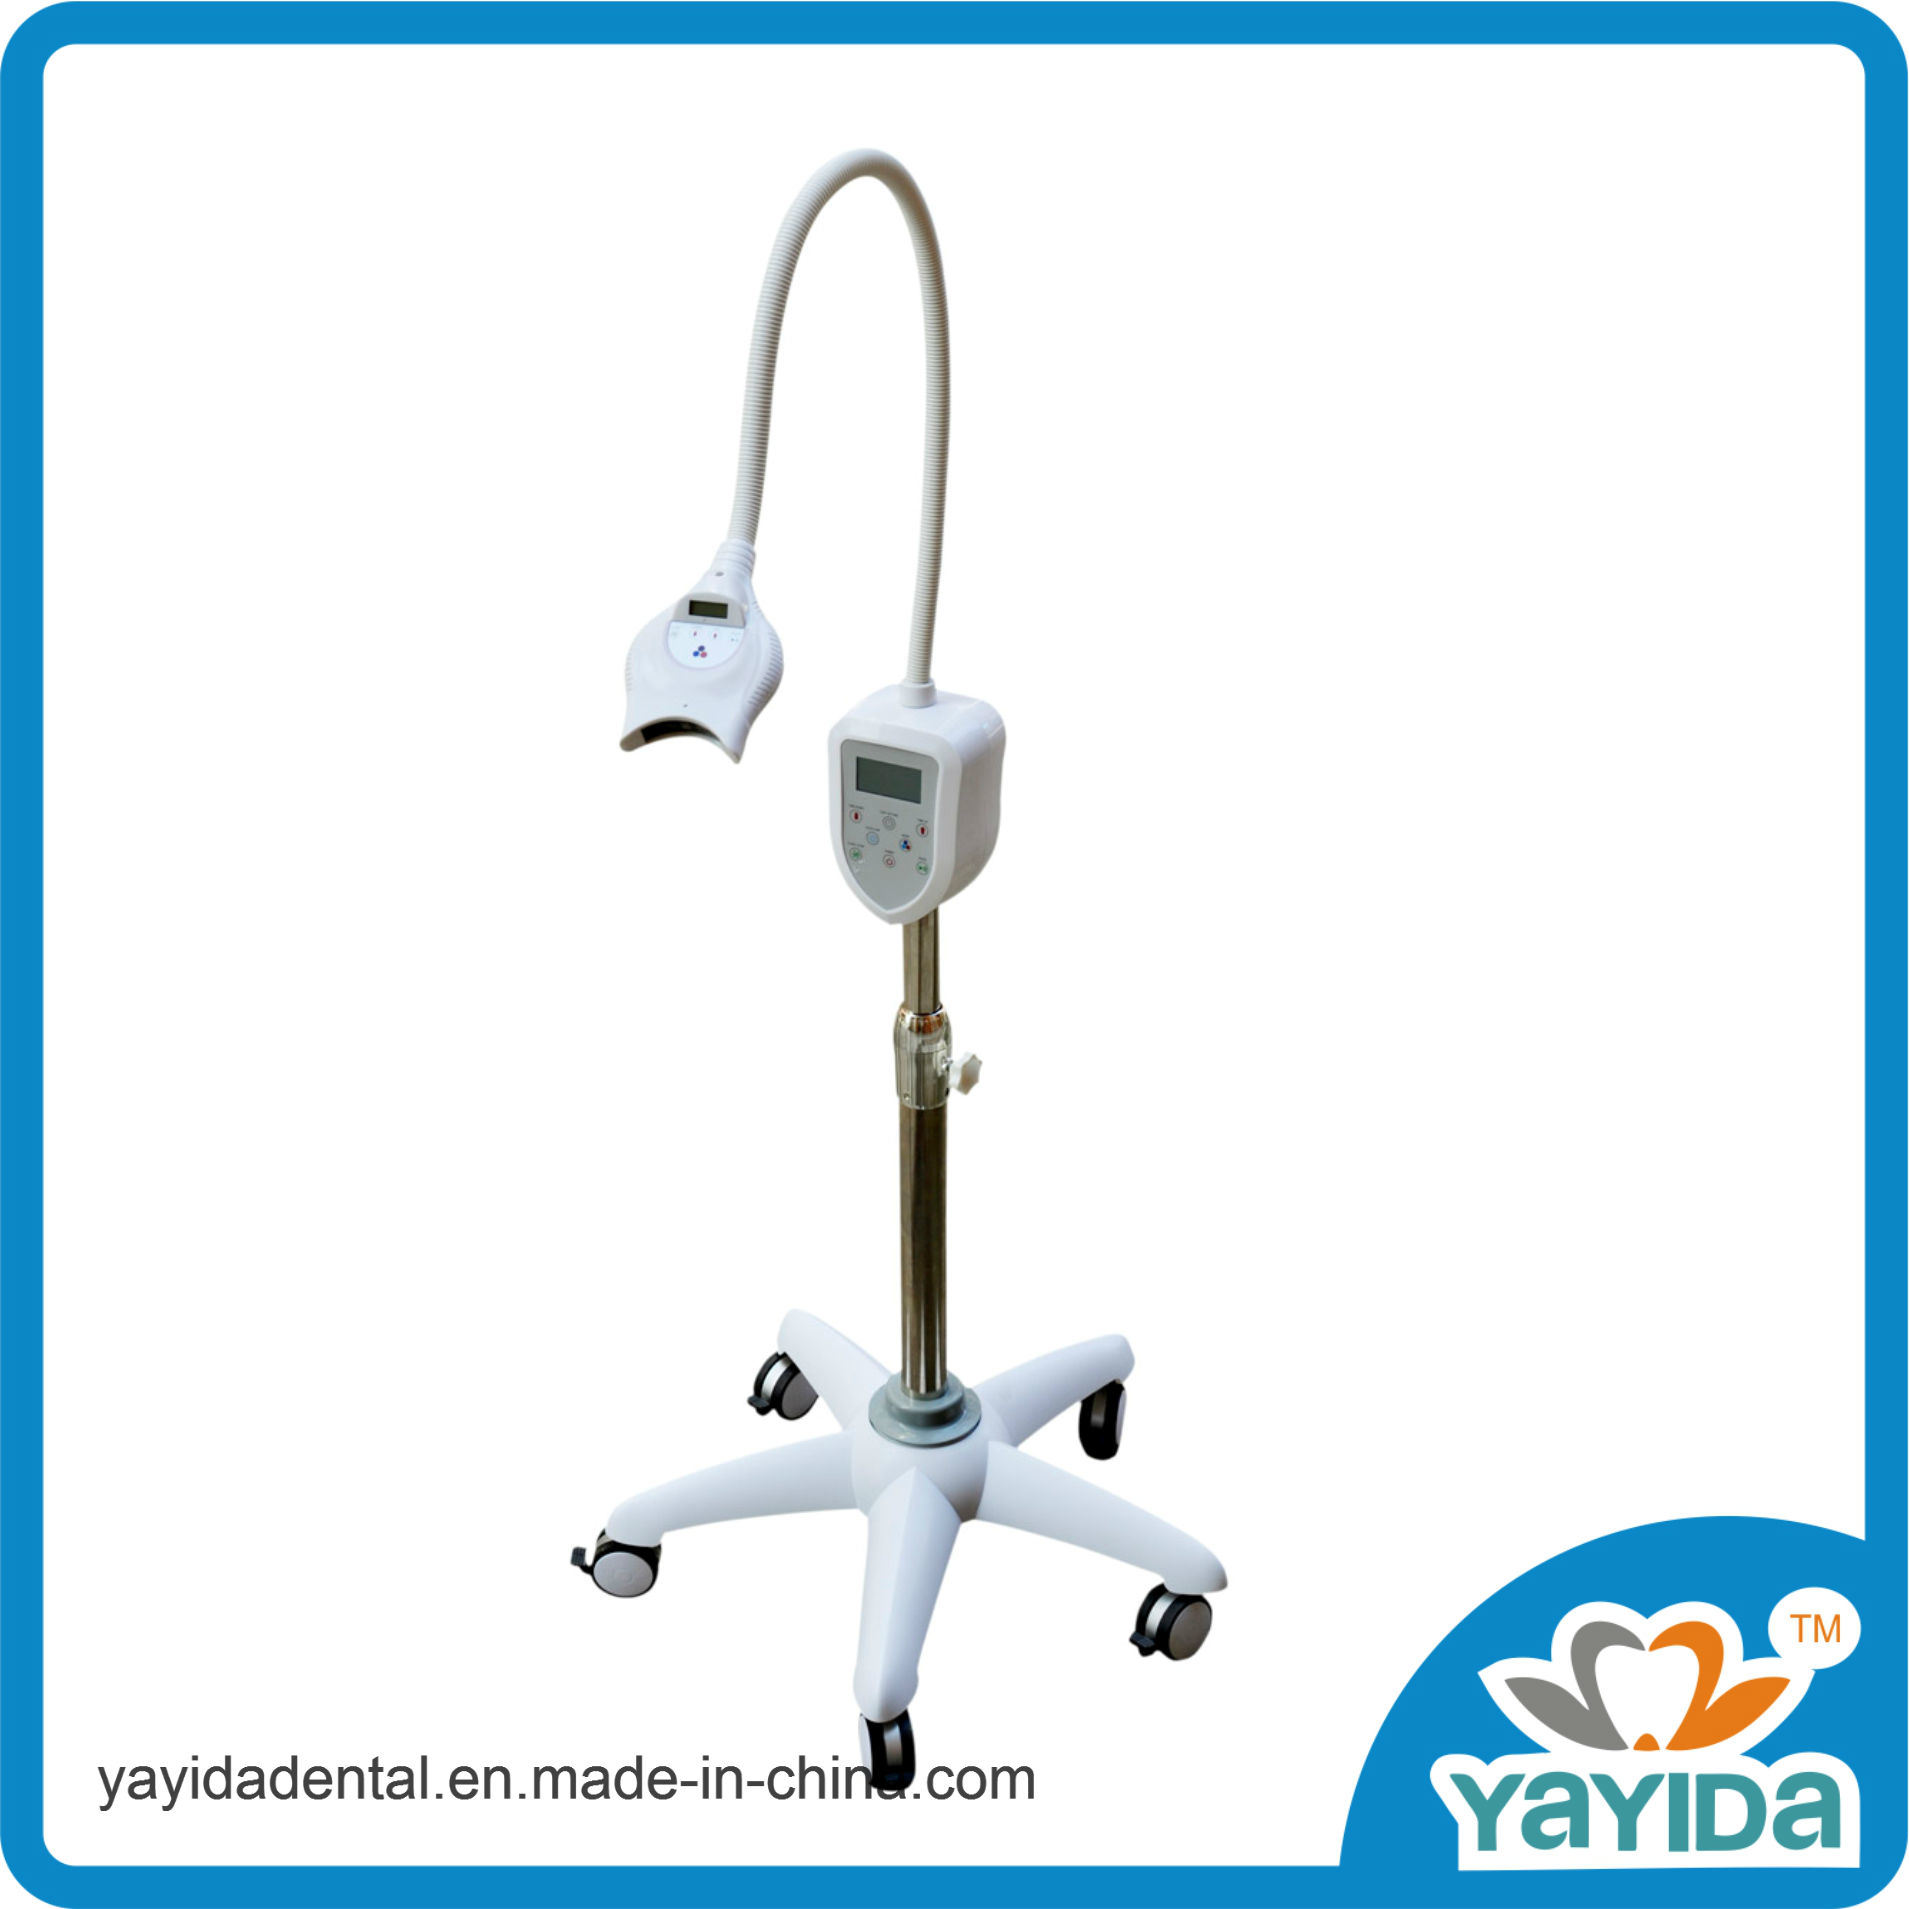 Laer Dental Teeth Whitening Lamp with Blue or Red Light